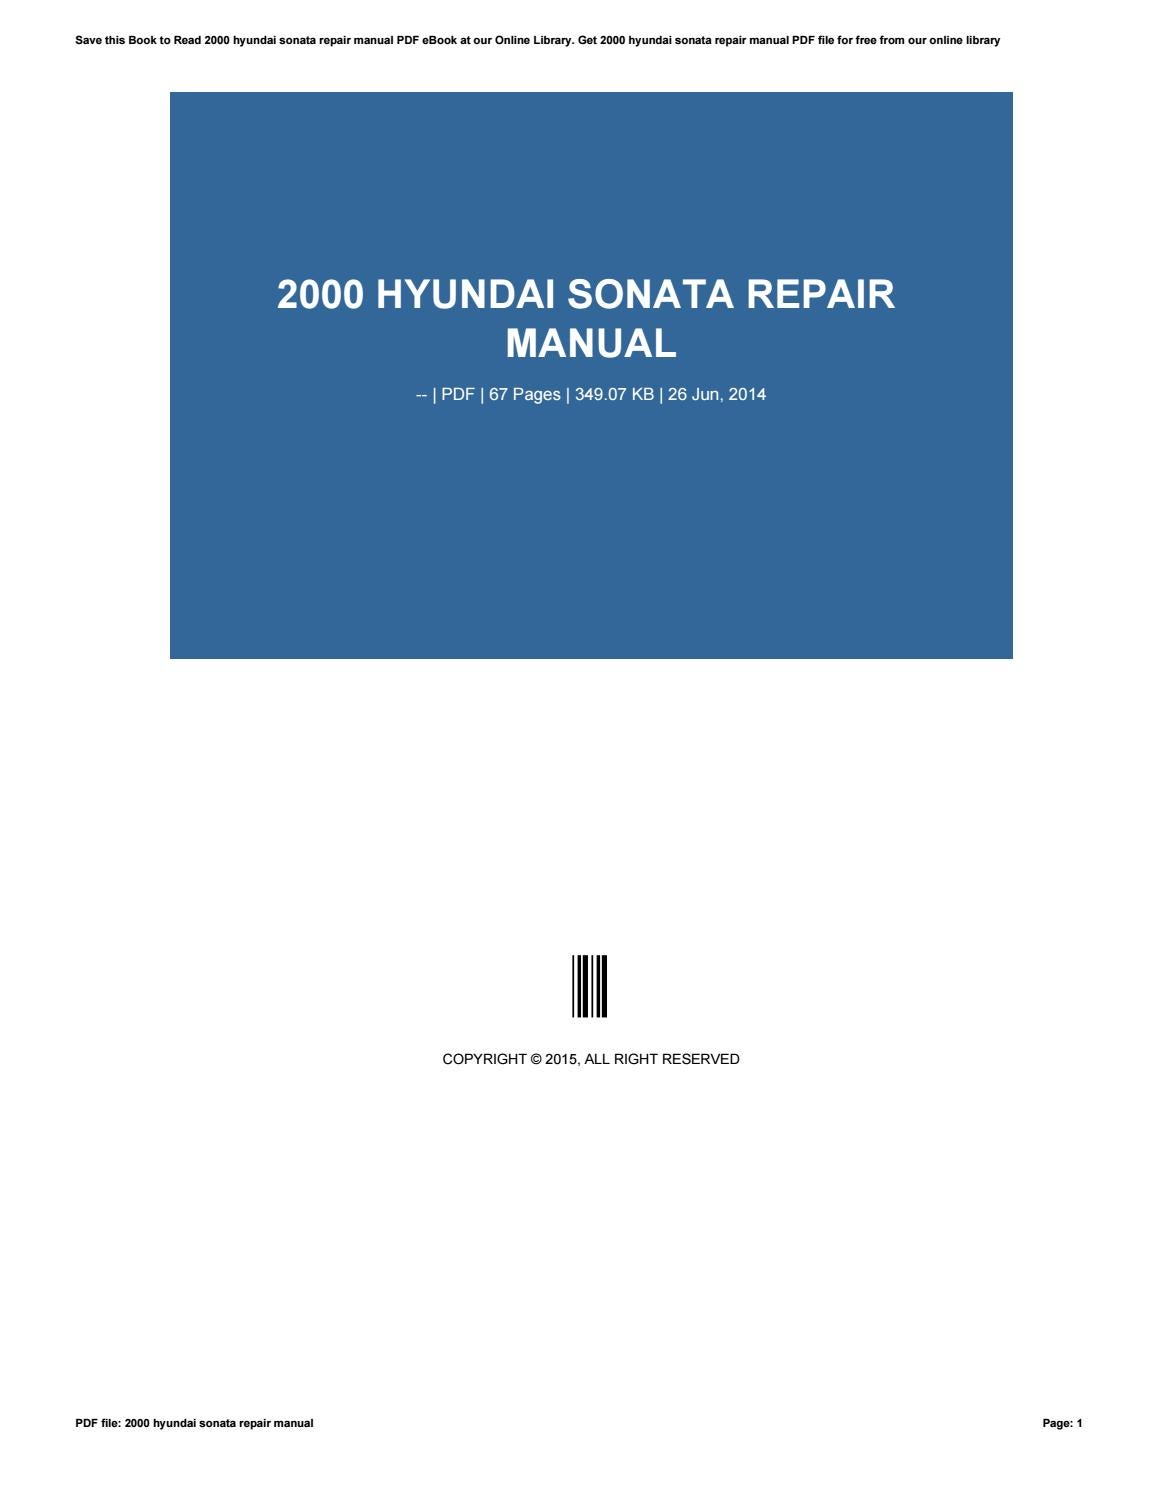 2012 hyundai sonata repair manual pdf